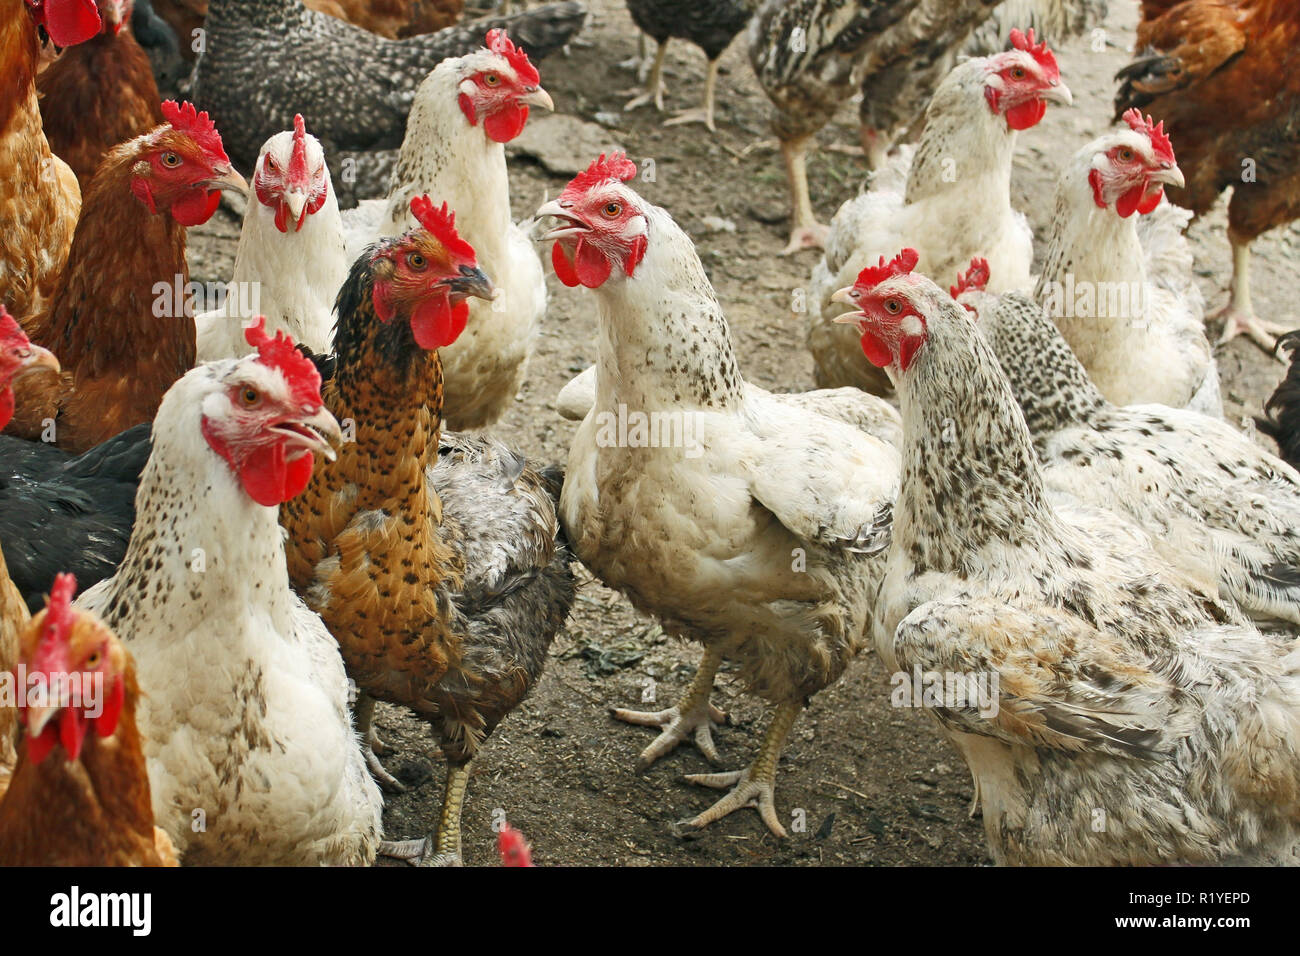 Group of hens and roosters on the poultry yard - Stock Image